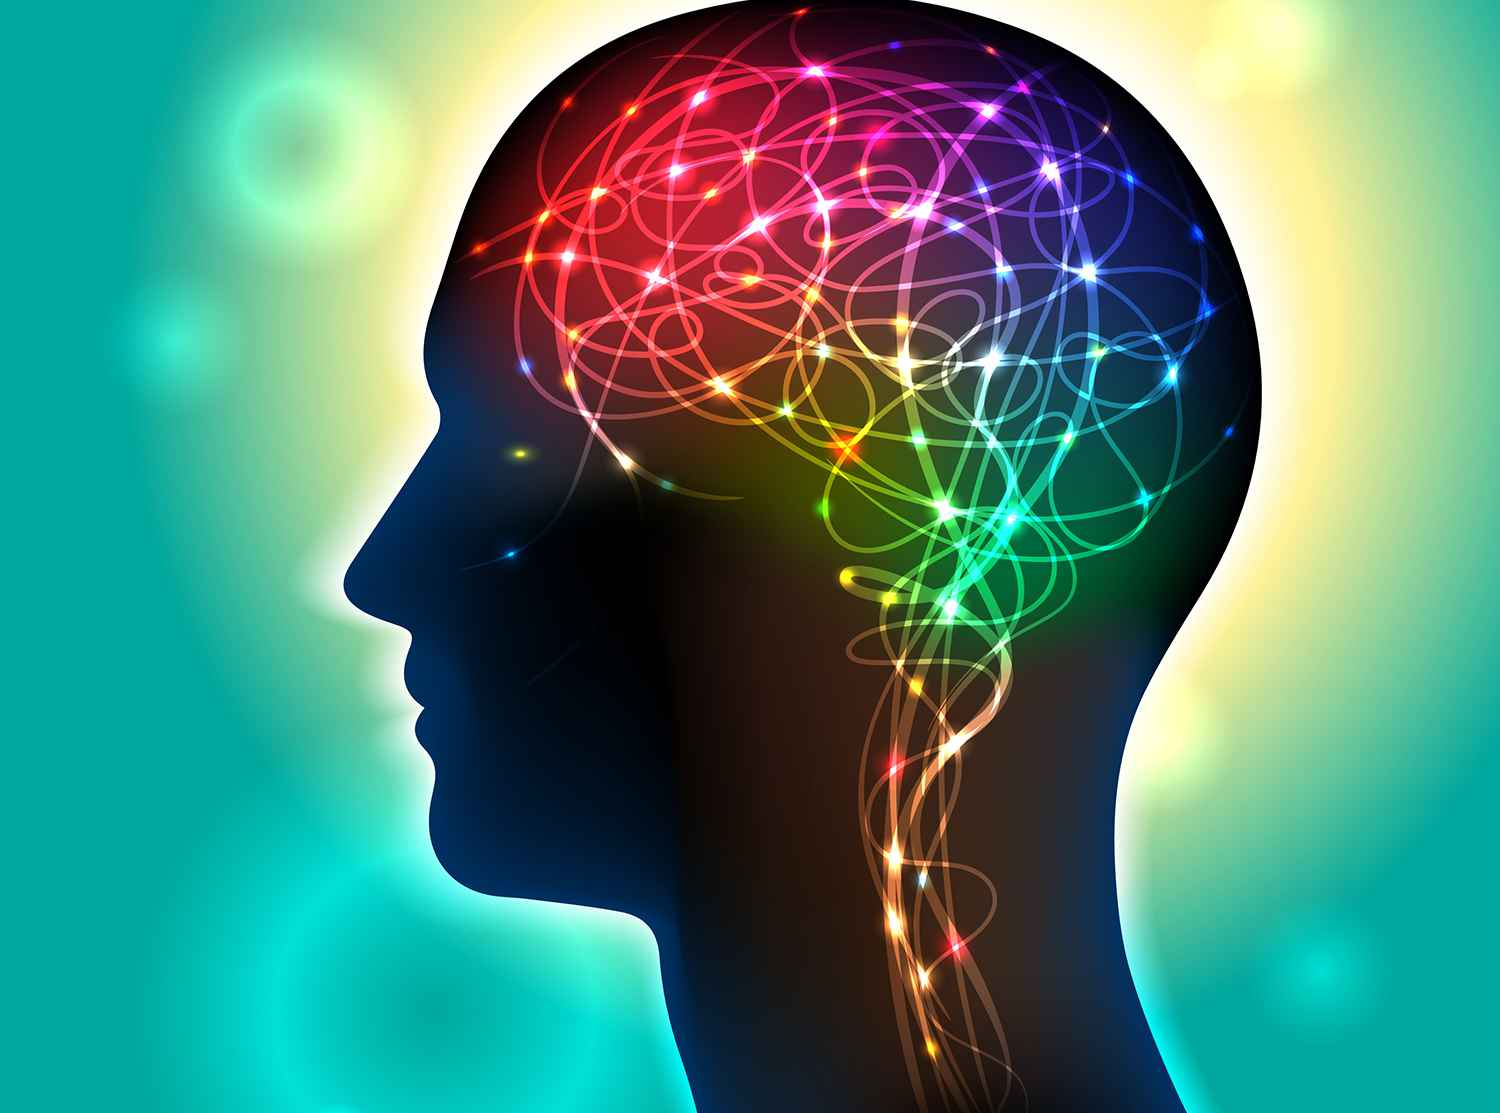 Is there a way to change subconscious patterns?